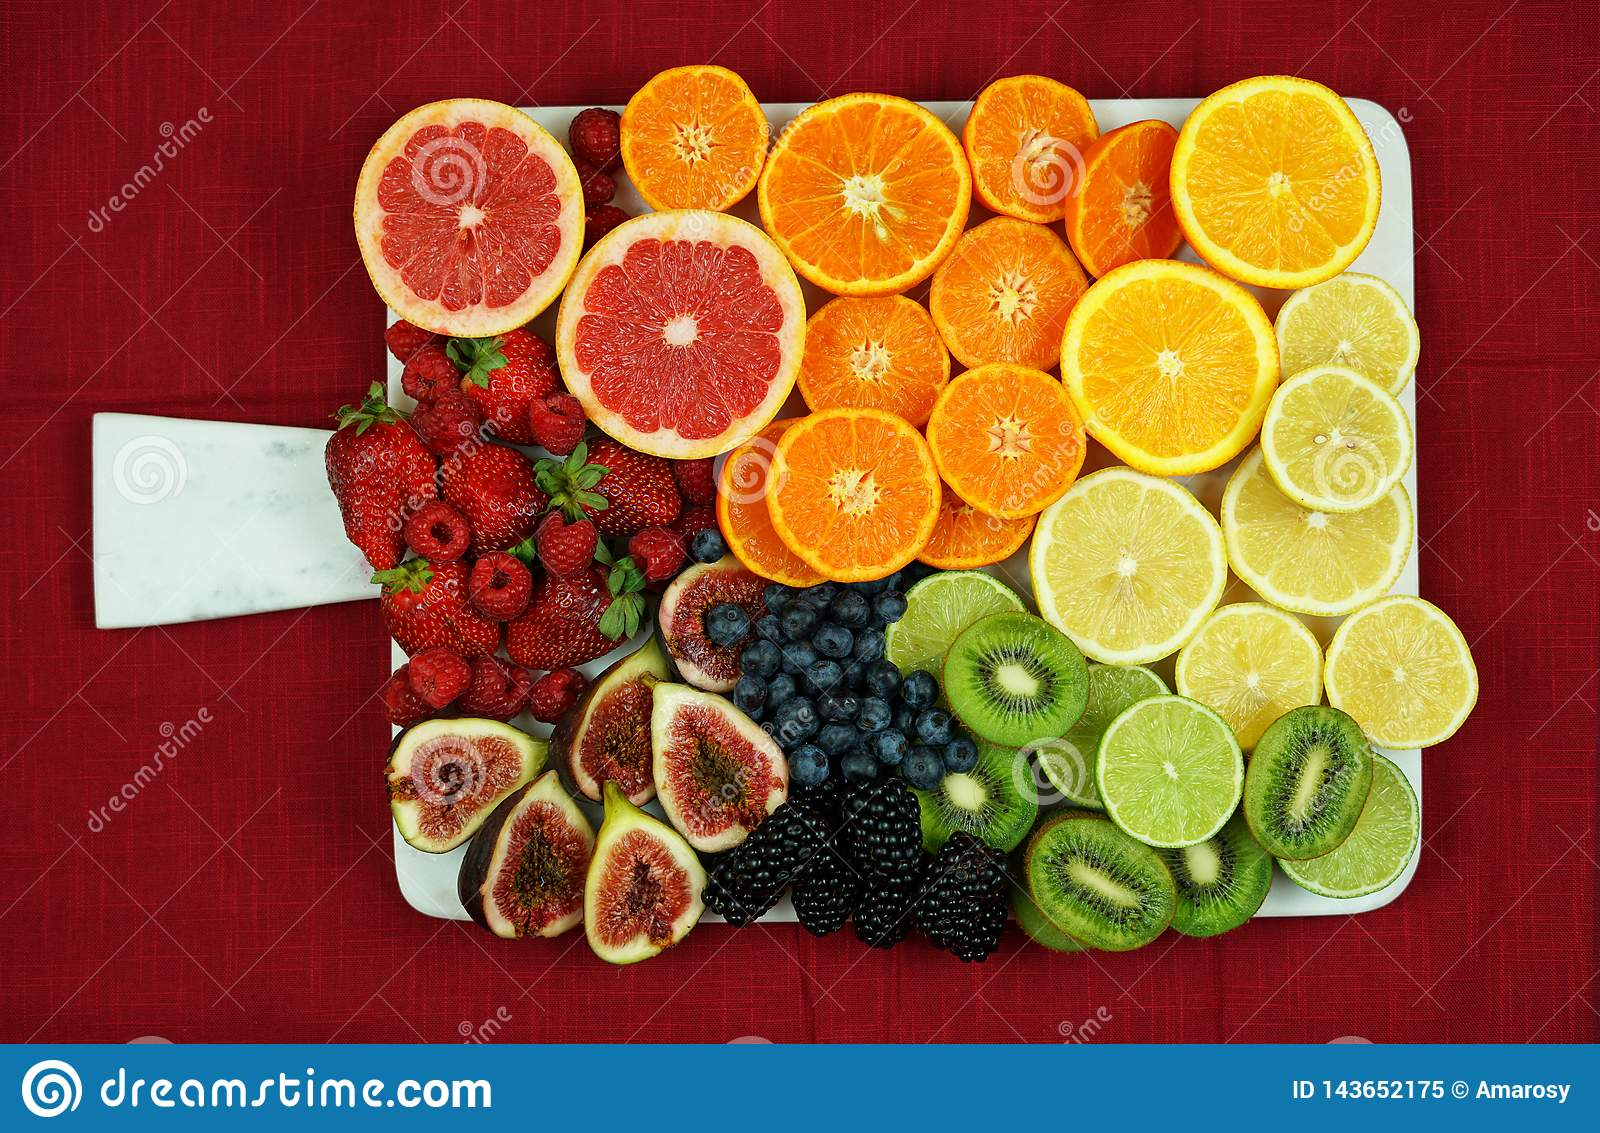 Colorful Fruit Platter Assembly With Rainbow Color Fruit Pieces Including Citrus Berries Figs And Kiwi Fruit Stock Image Image Of Food Countertop 143652175